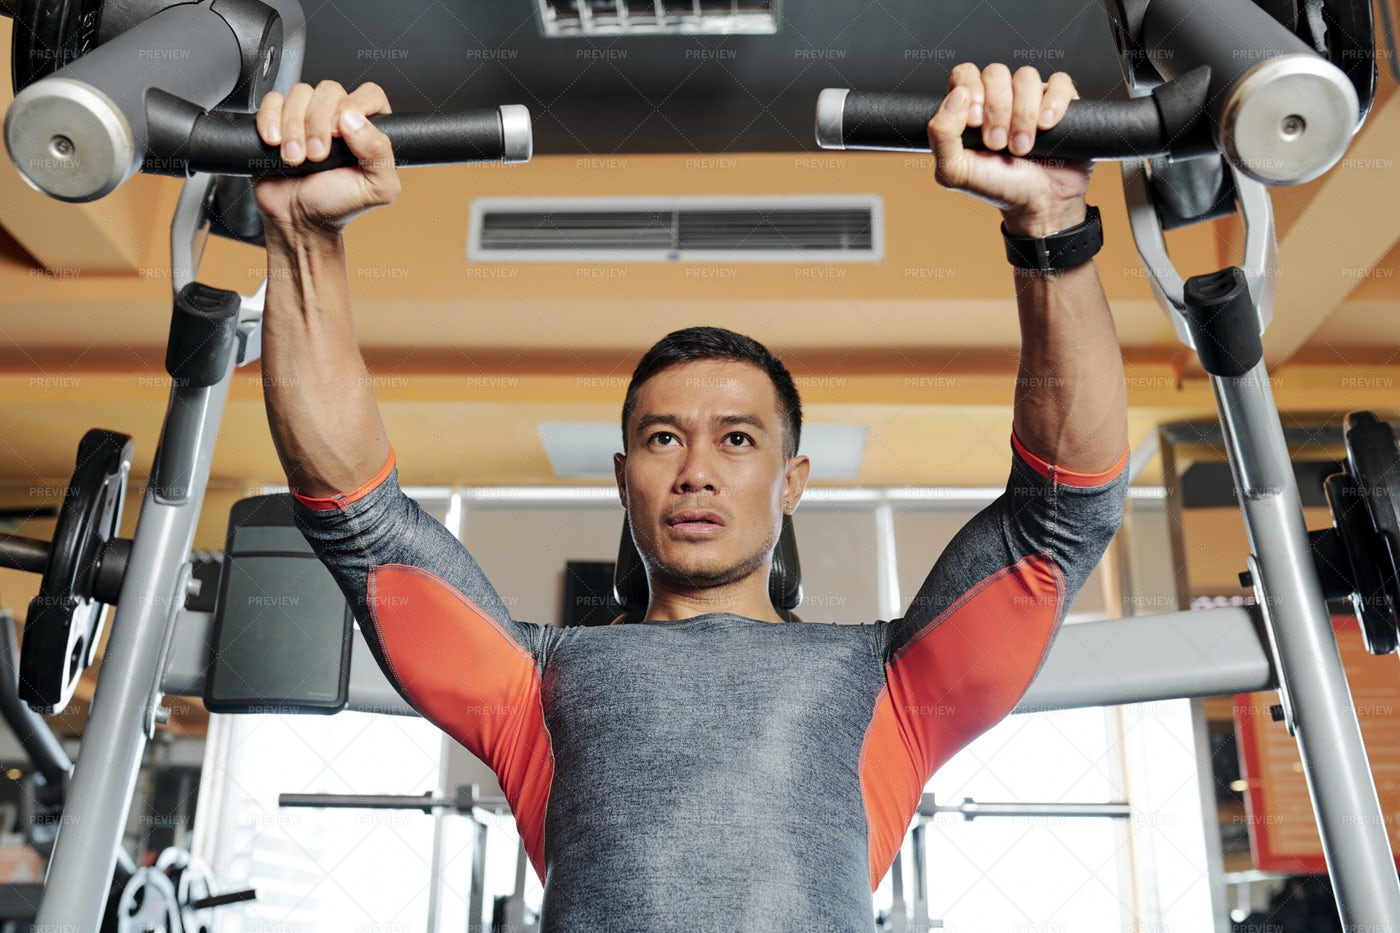 Strong Man Doing Chest Exercise: Stock Photos